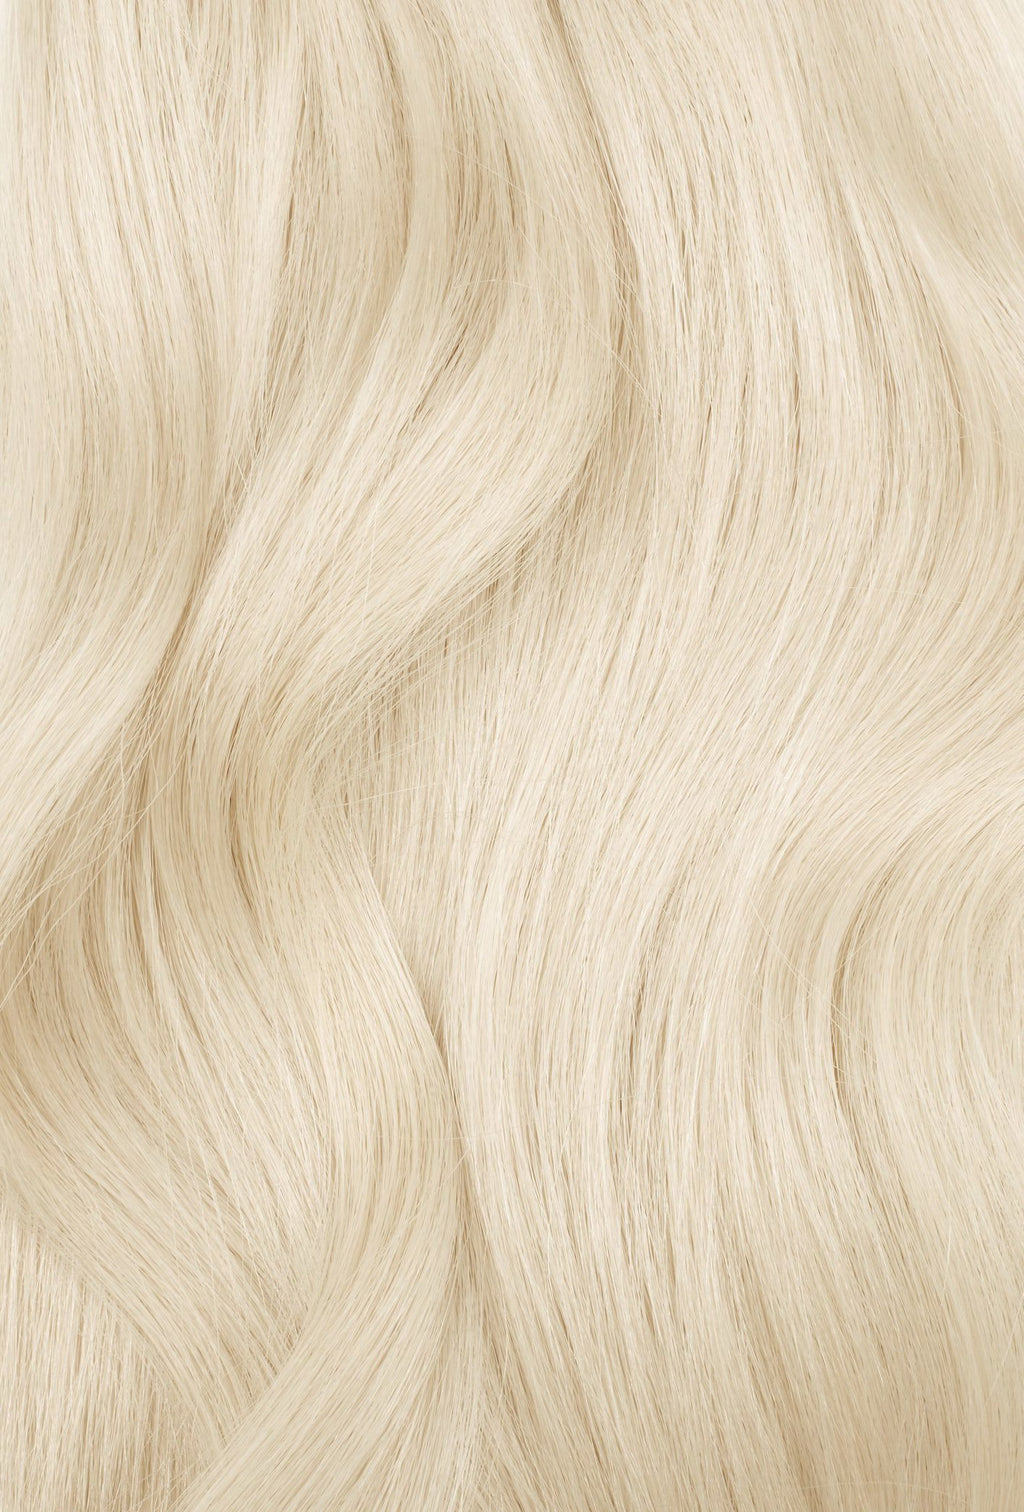 Bombay Hair Blonde Extensions